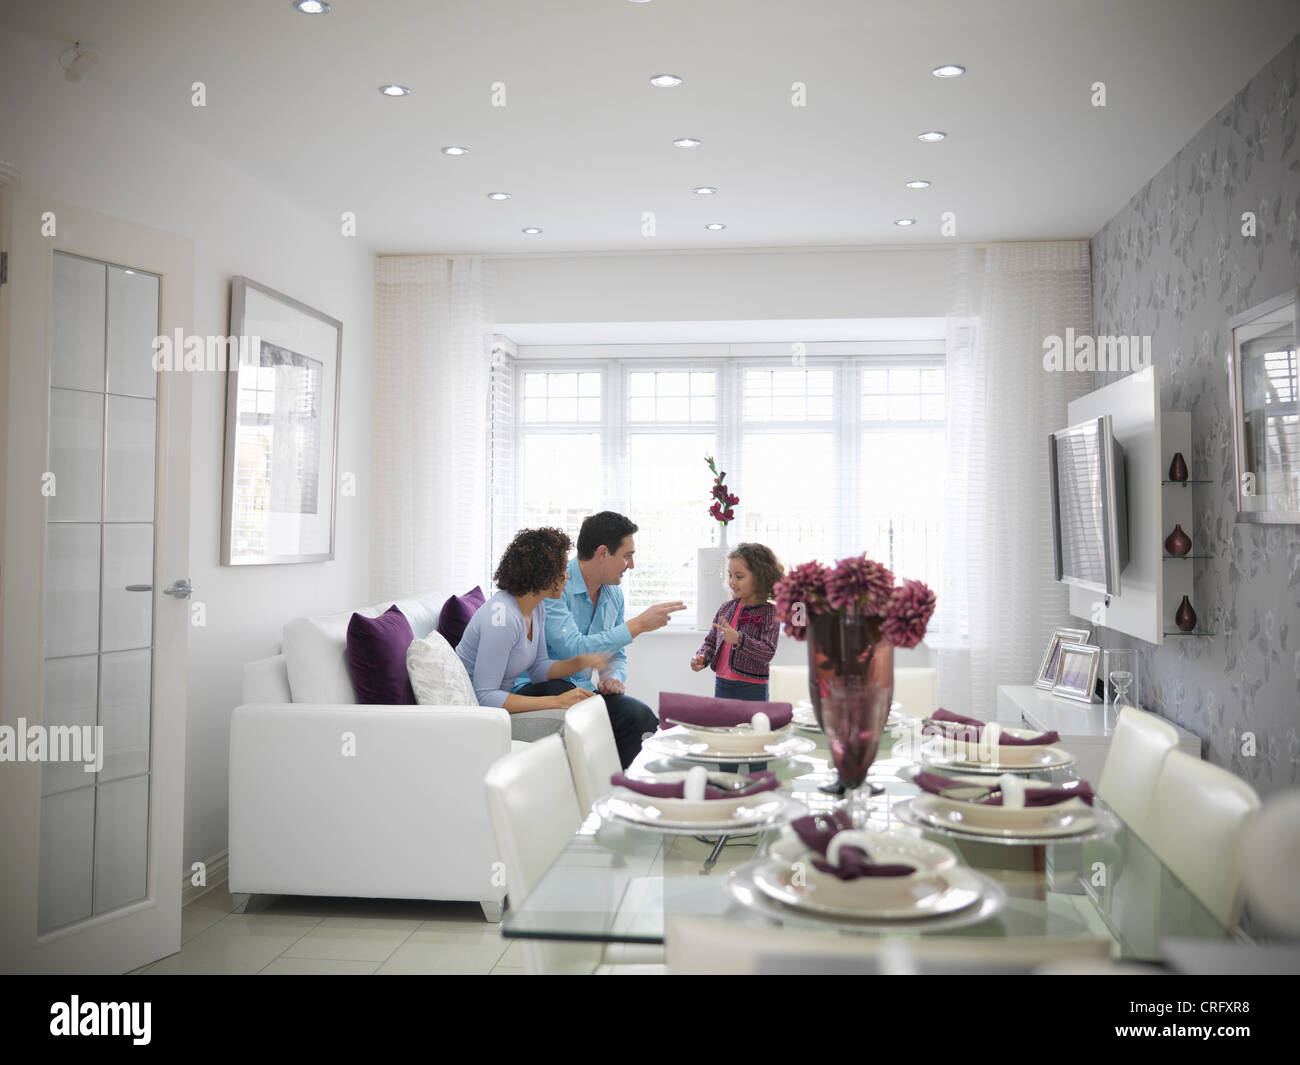 Family relaxing together in living room Stock Photo: 48908140 - Alamy